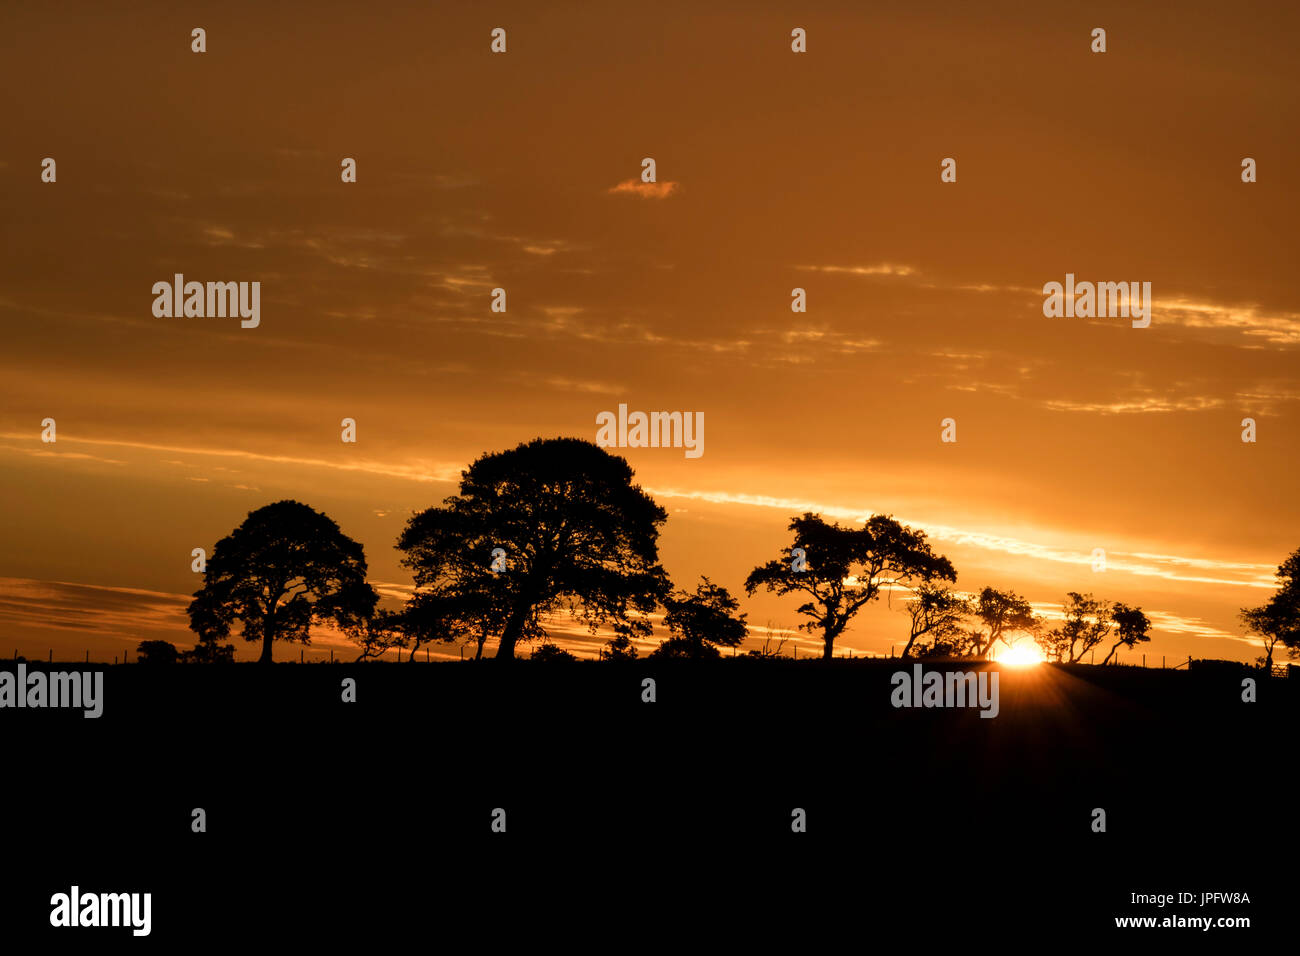 Marwood, Teesdale, County Durham UK.  Wednesday 2nd August 2017. UK Weather.  With rain expected to spread to most parts of the UK today the old country saying of 'red sky in the morning shepherds warning' may well come true today. Credit: David Forster/Alamy Live News. - Stock Image